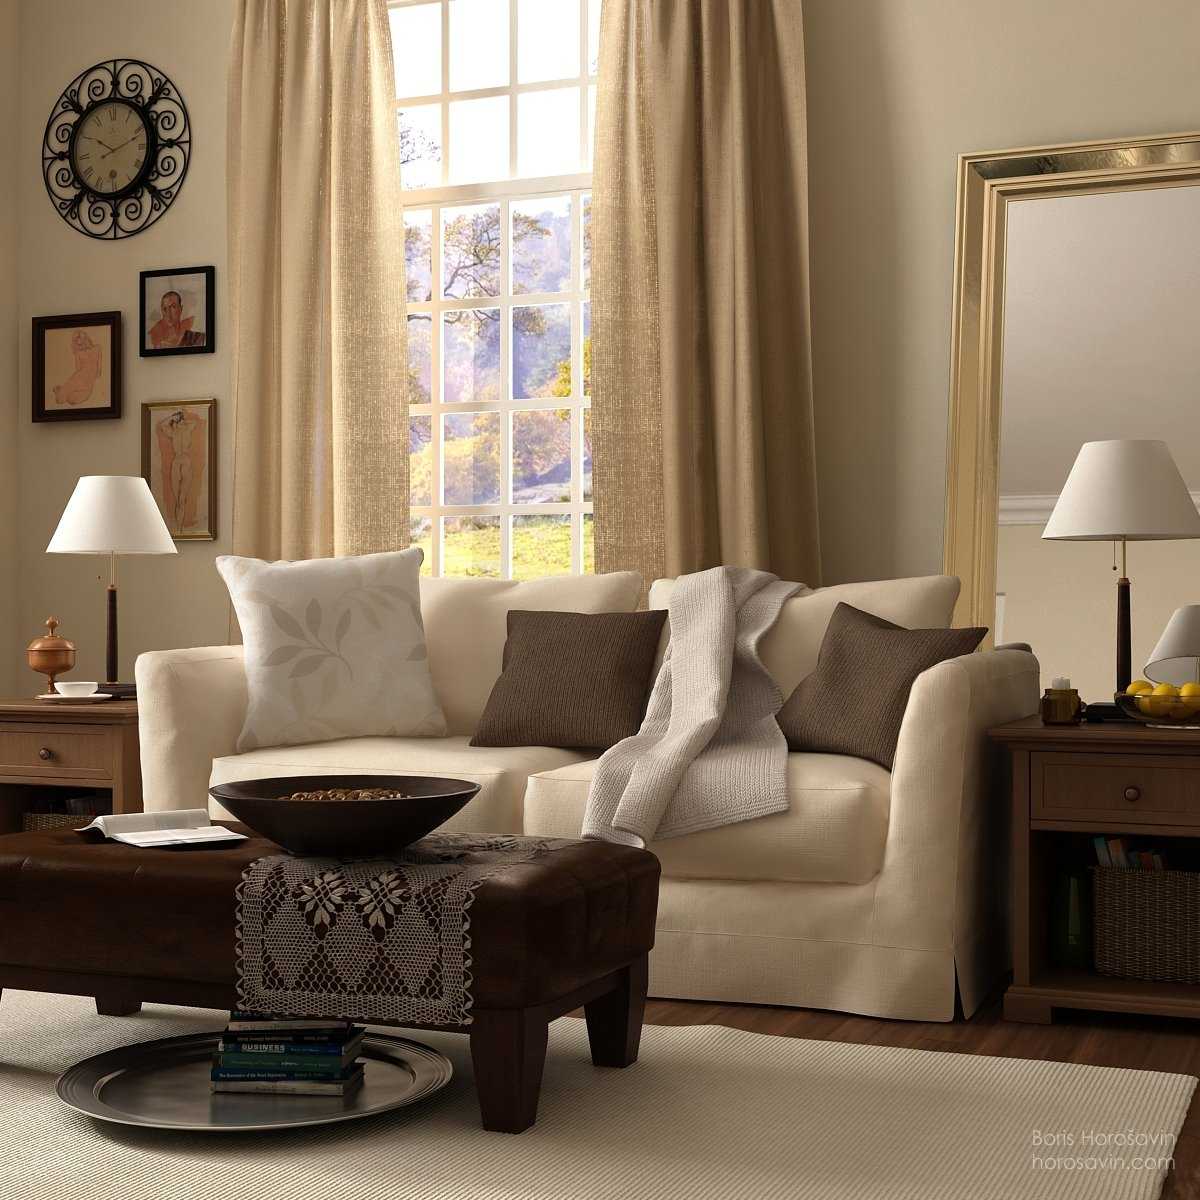 Living room layered in differend shades of beige